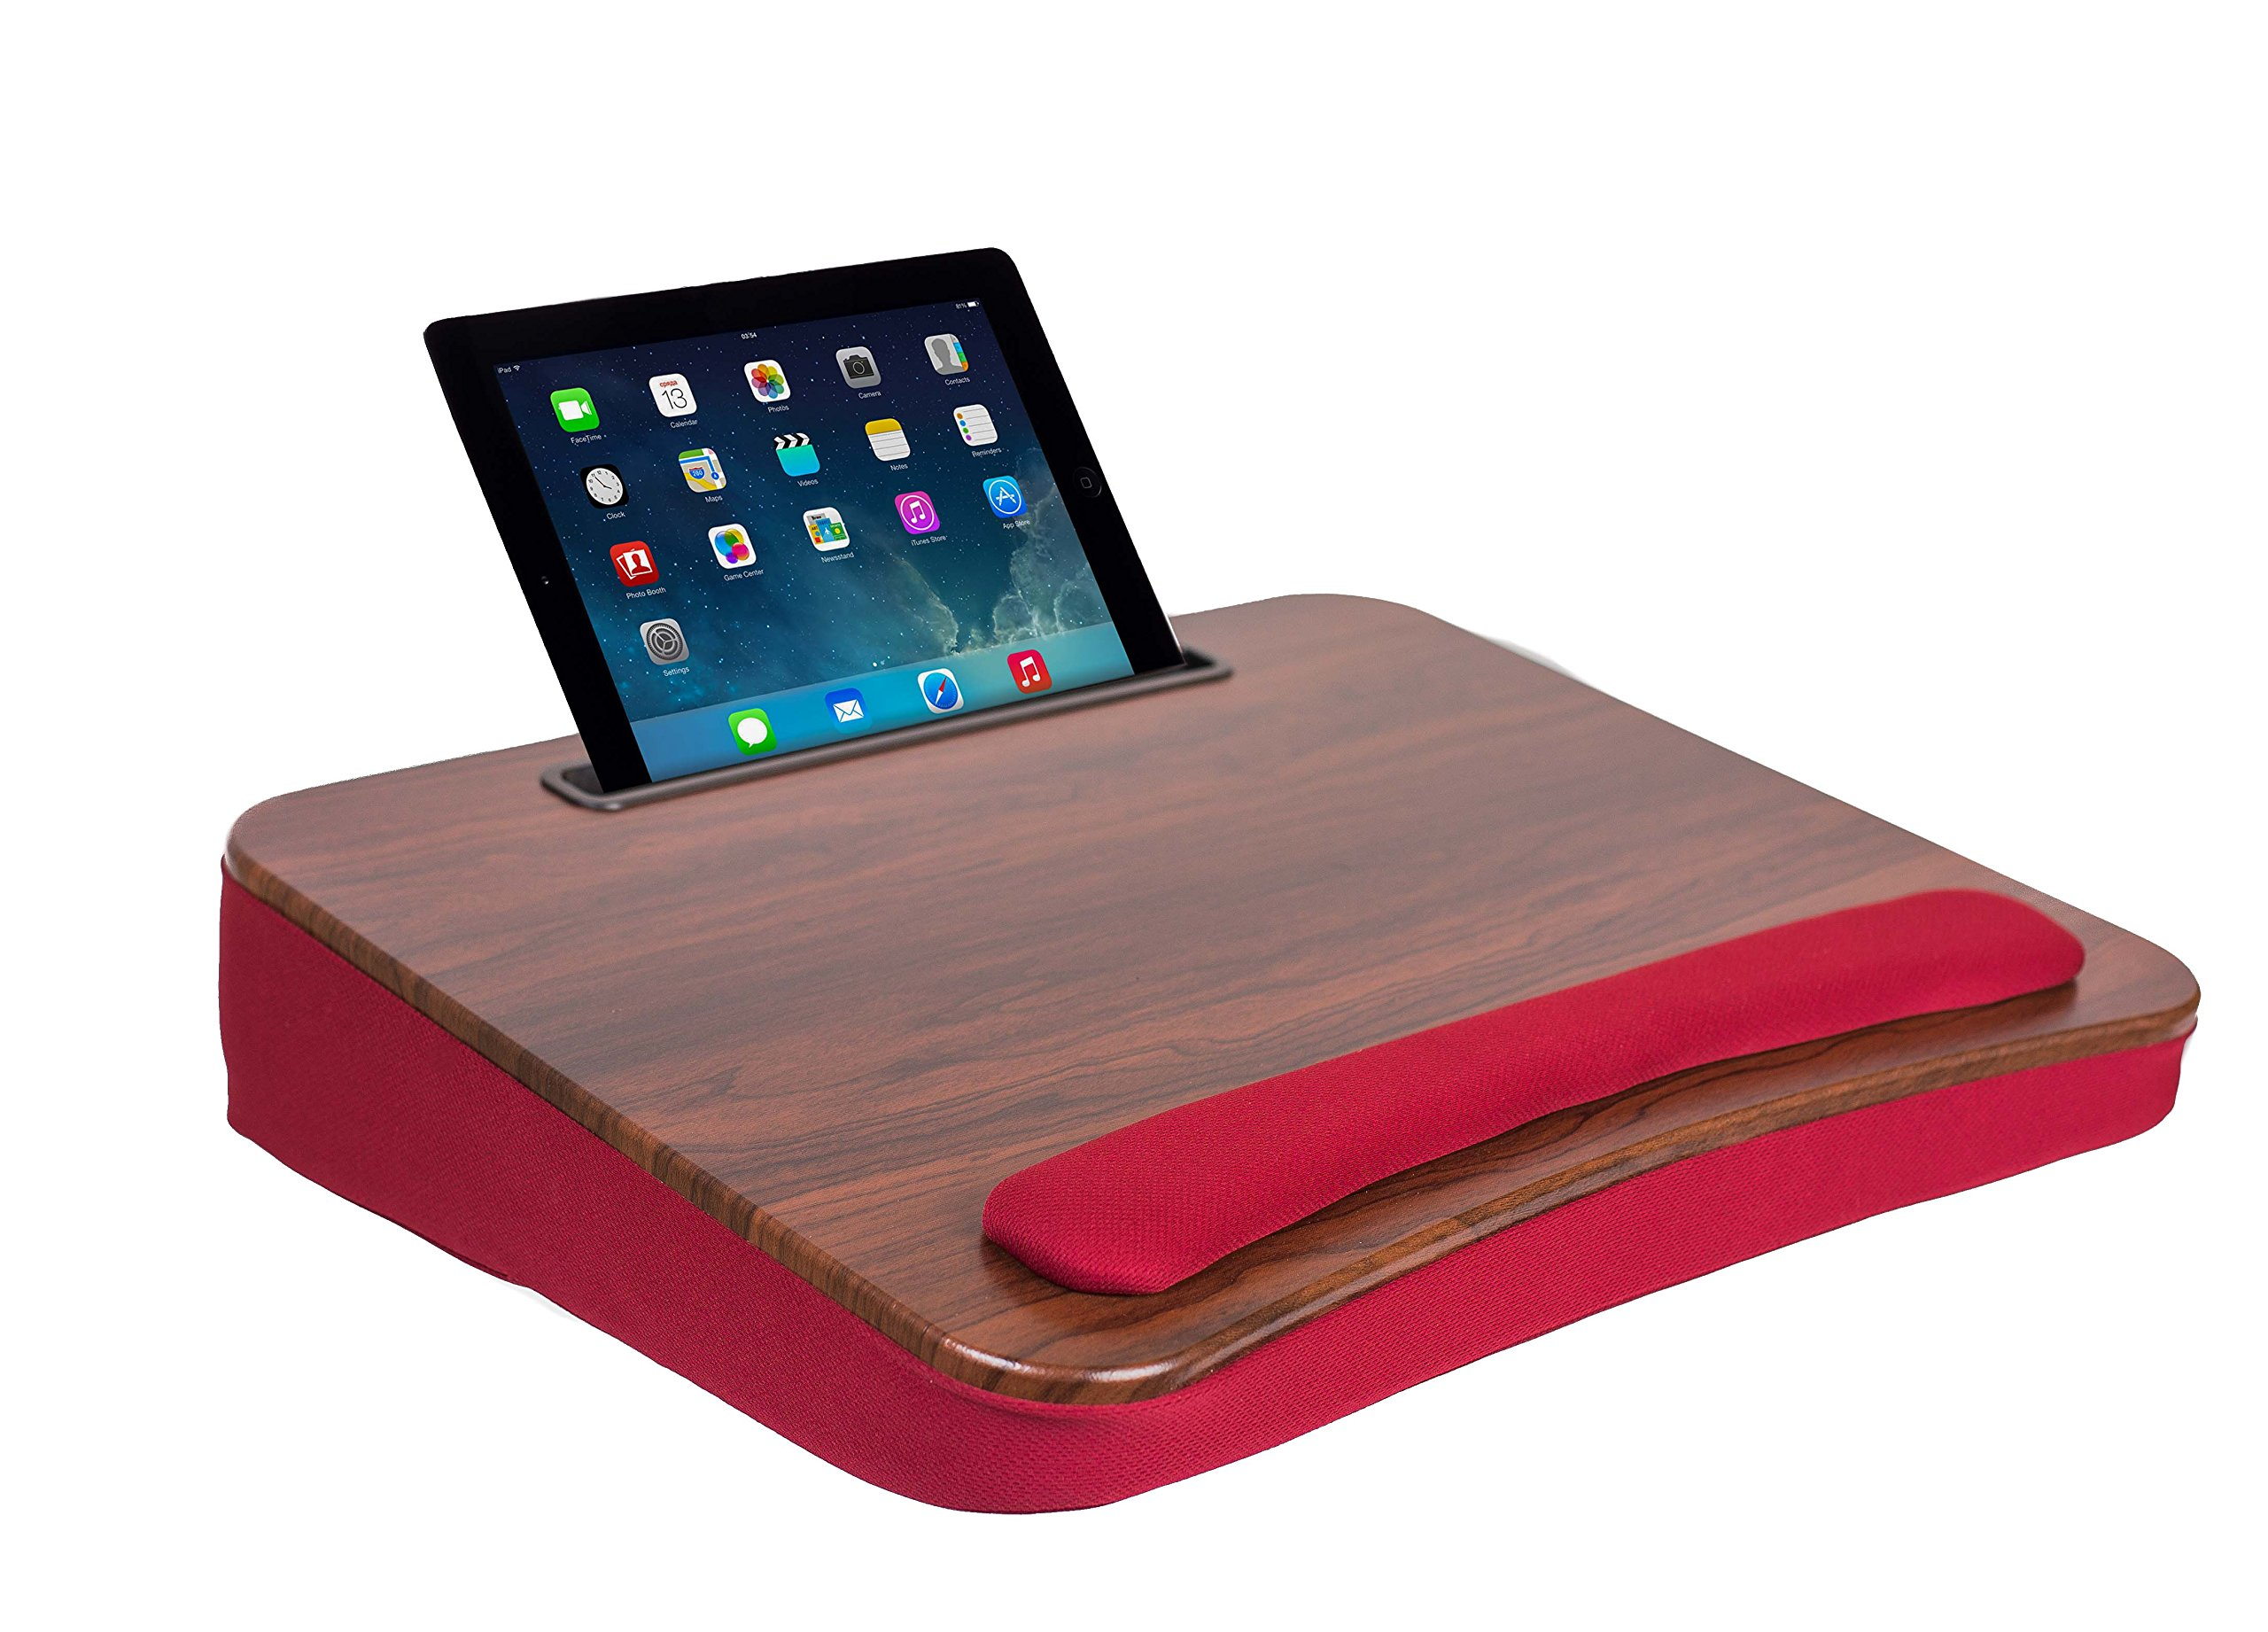 Sofia + Sam Oversized Memory Foam Lap Desk with Tablet slot